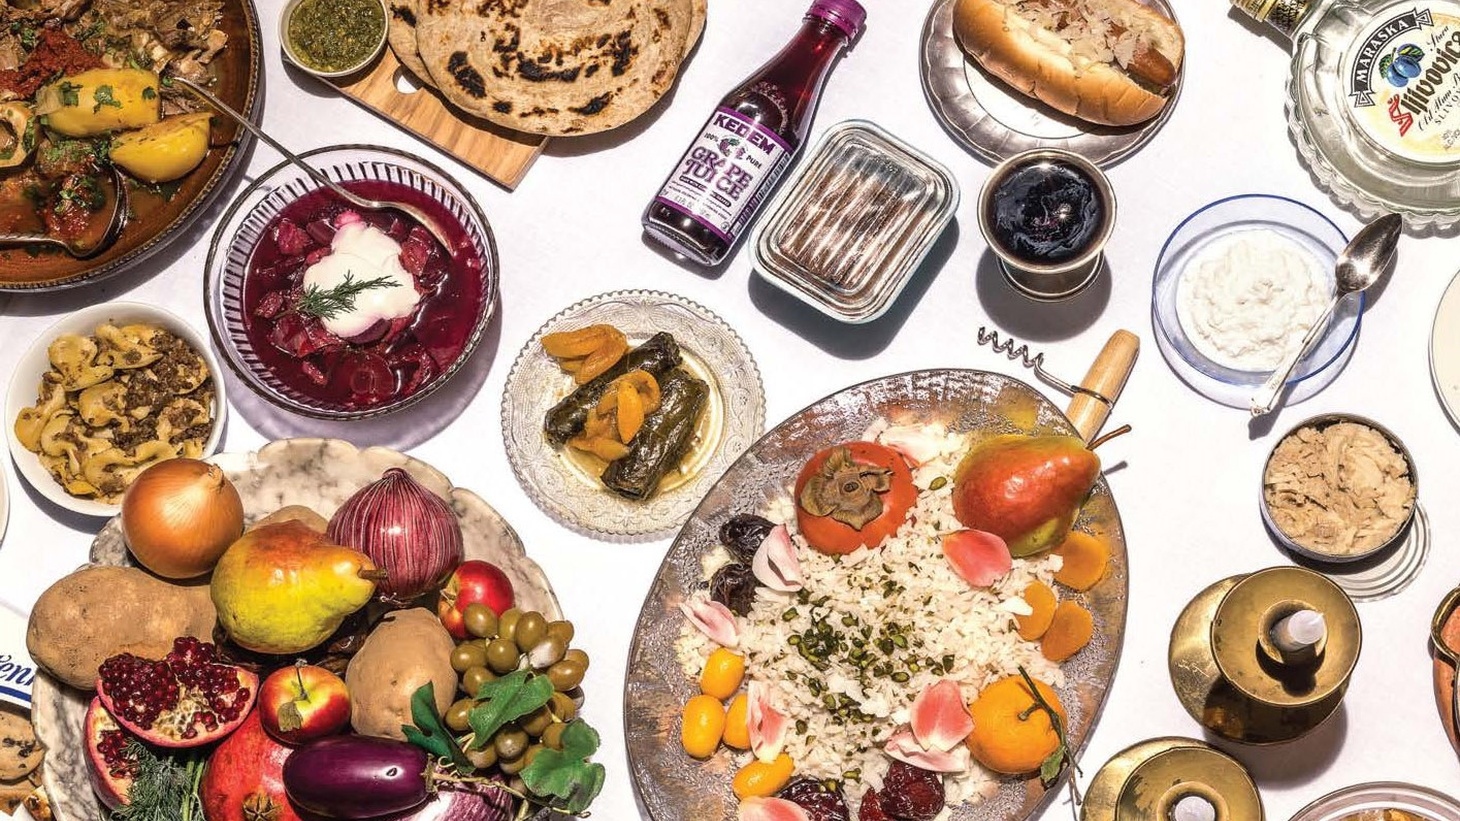 """Alana Newhouse talks about what made the cut for her new book, """"The 100 Most Jewish Foods."""""""